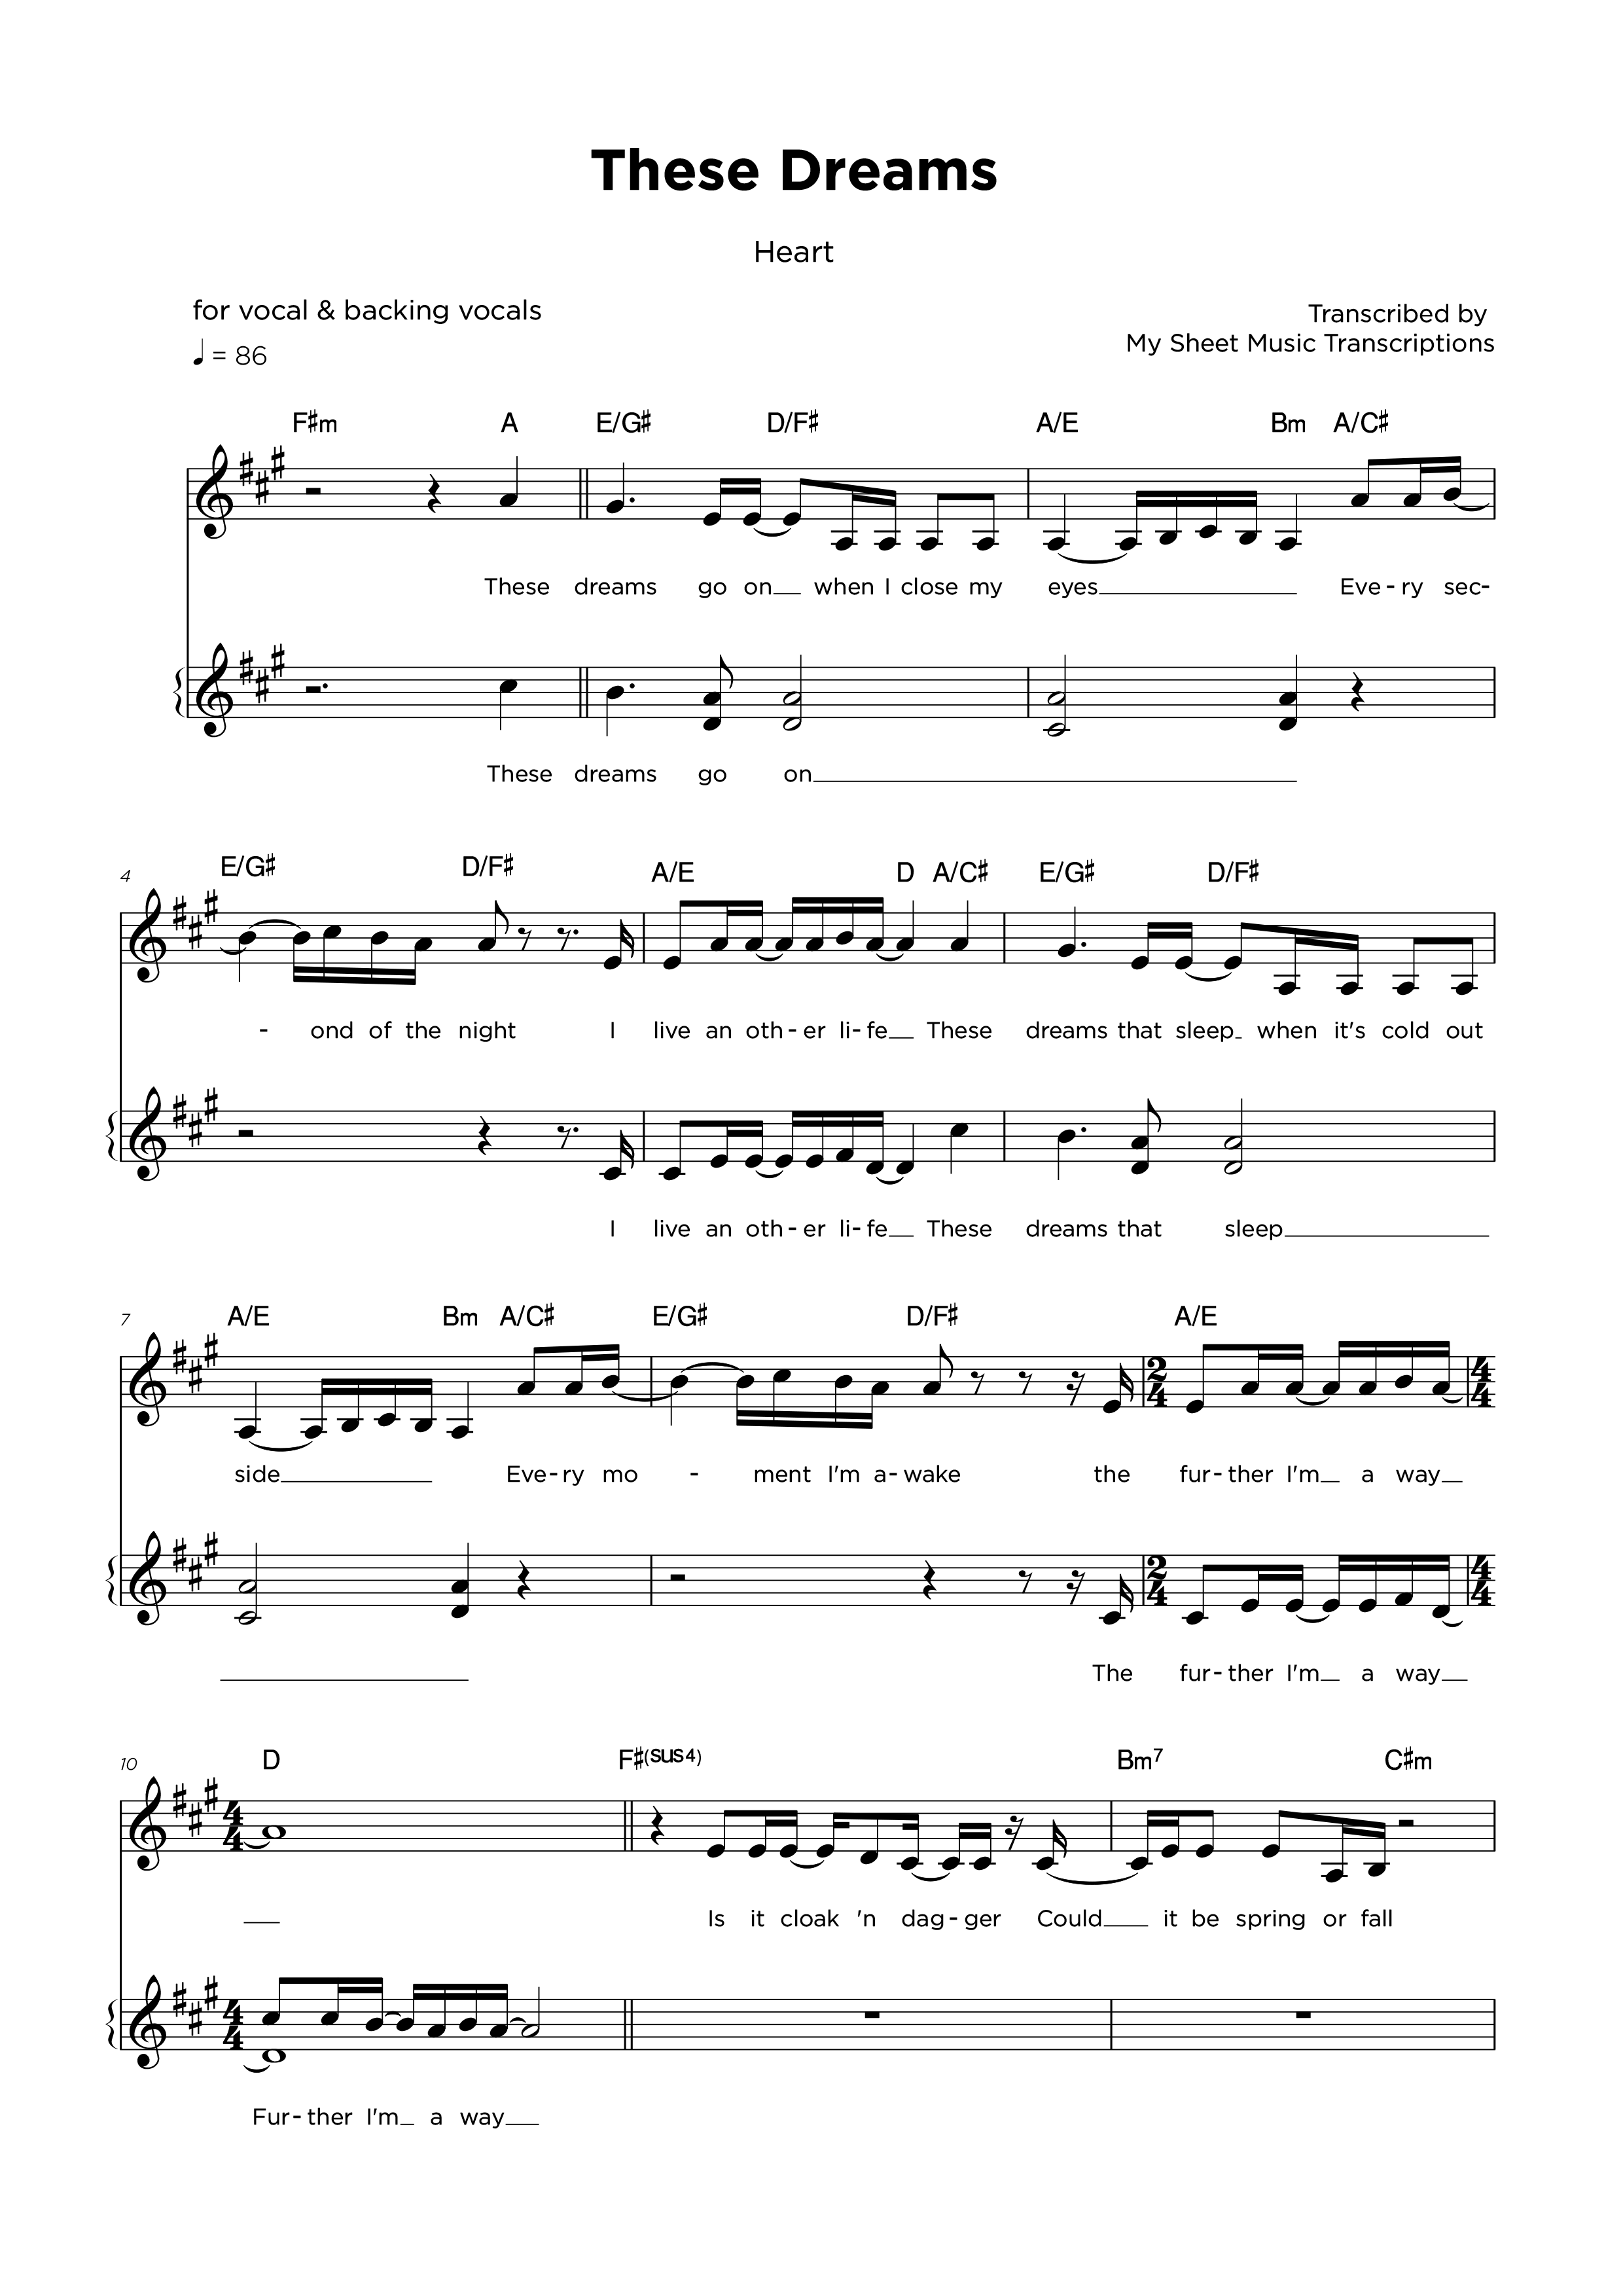 These Dreams - Hart - Backing vocals sheet music